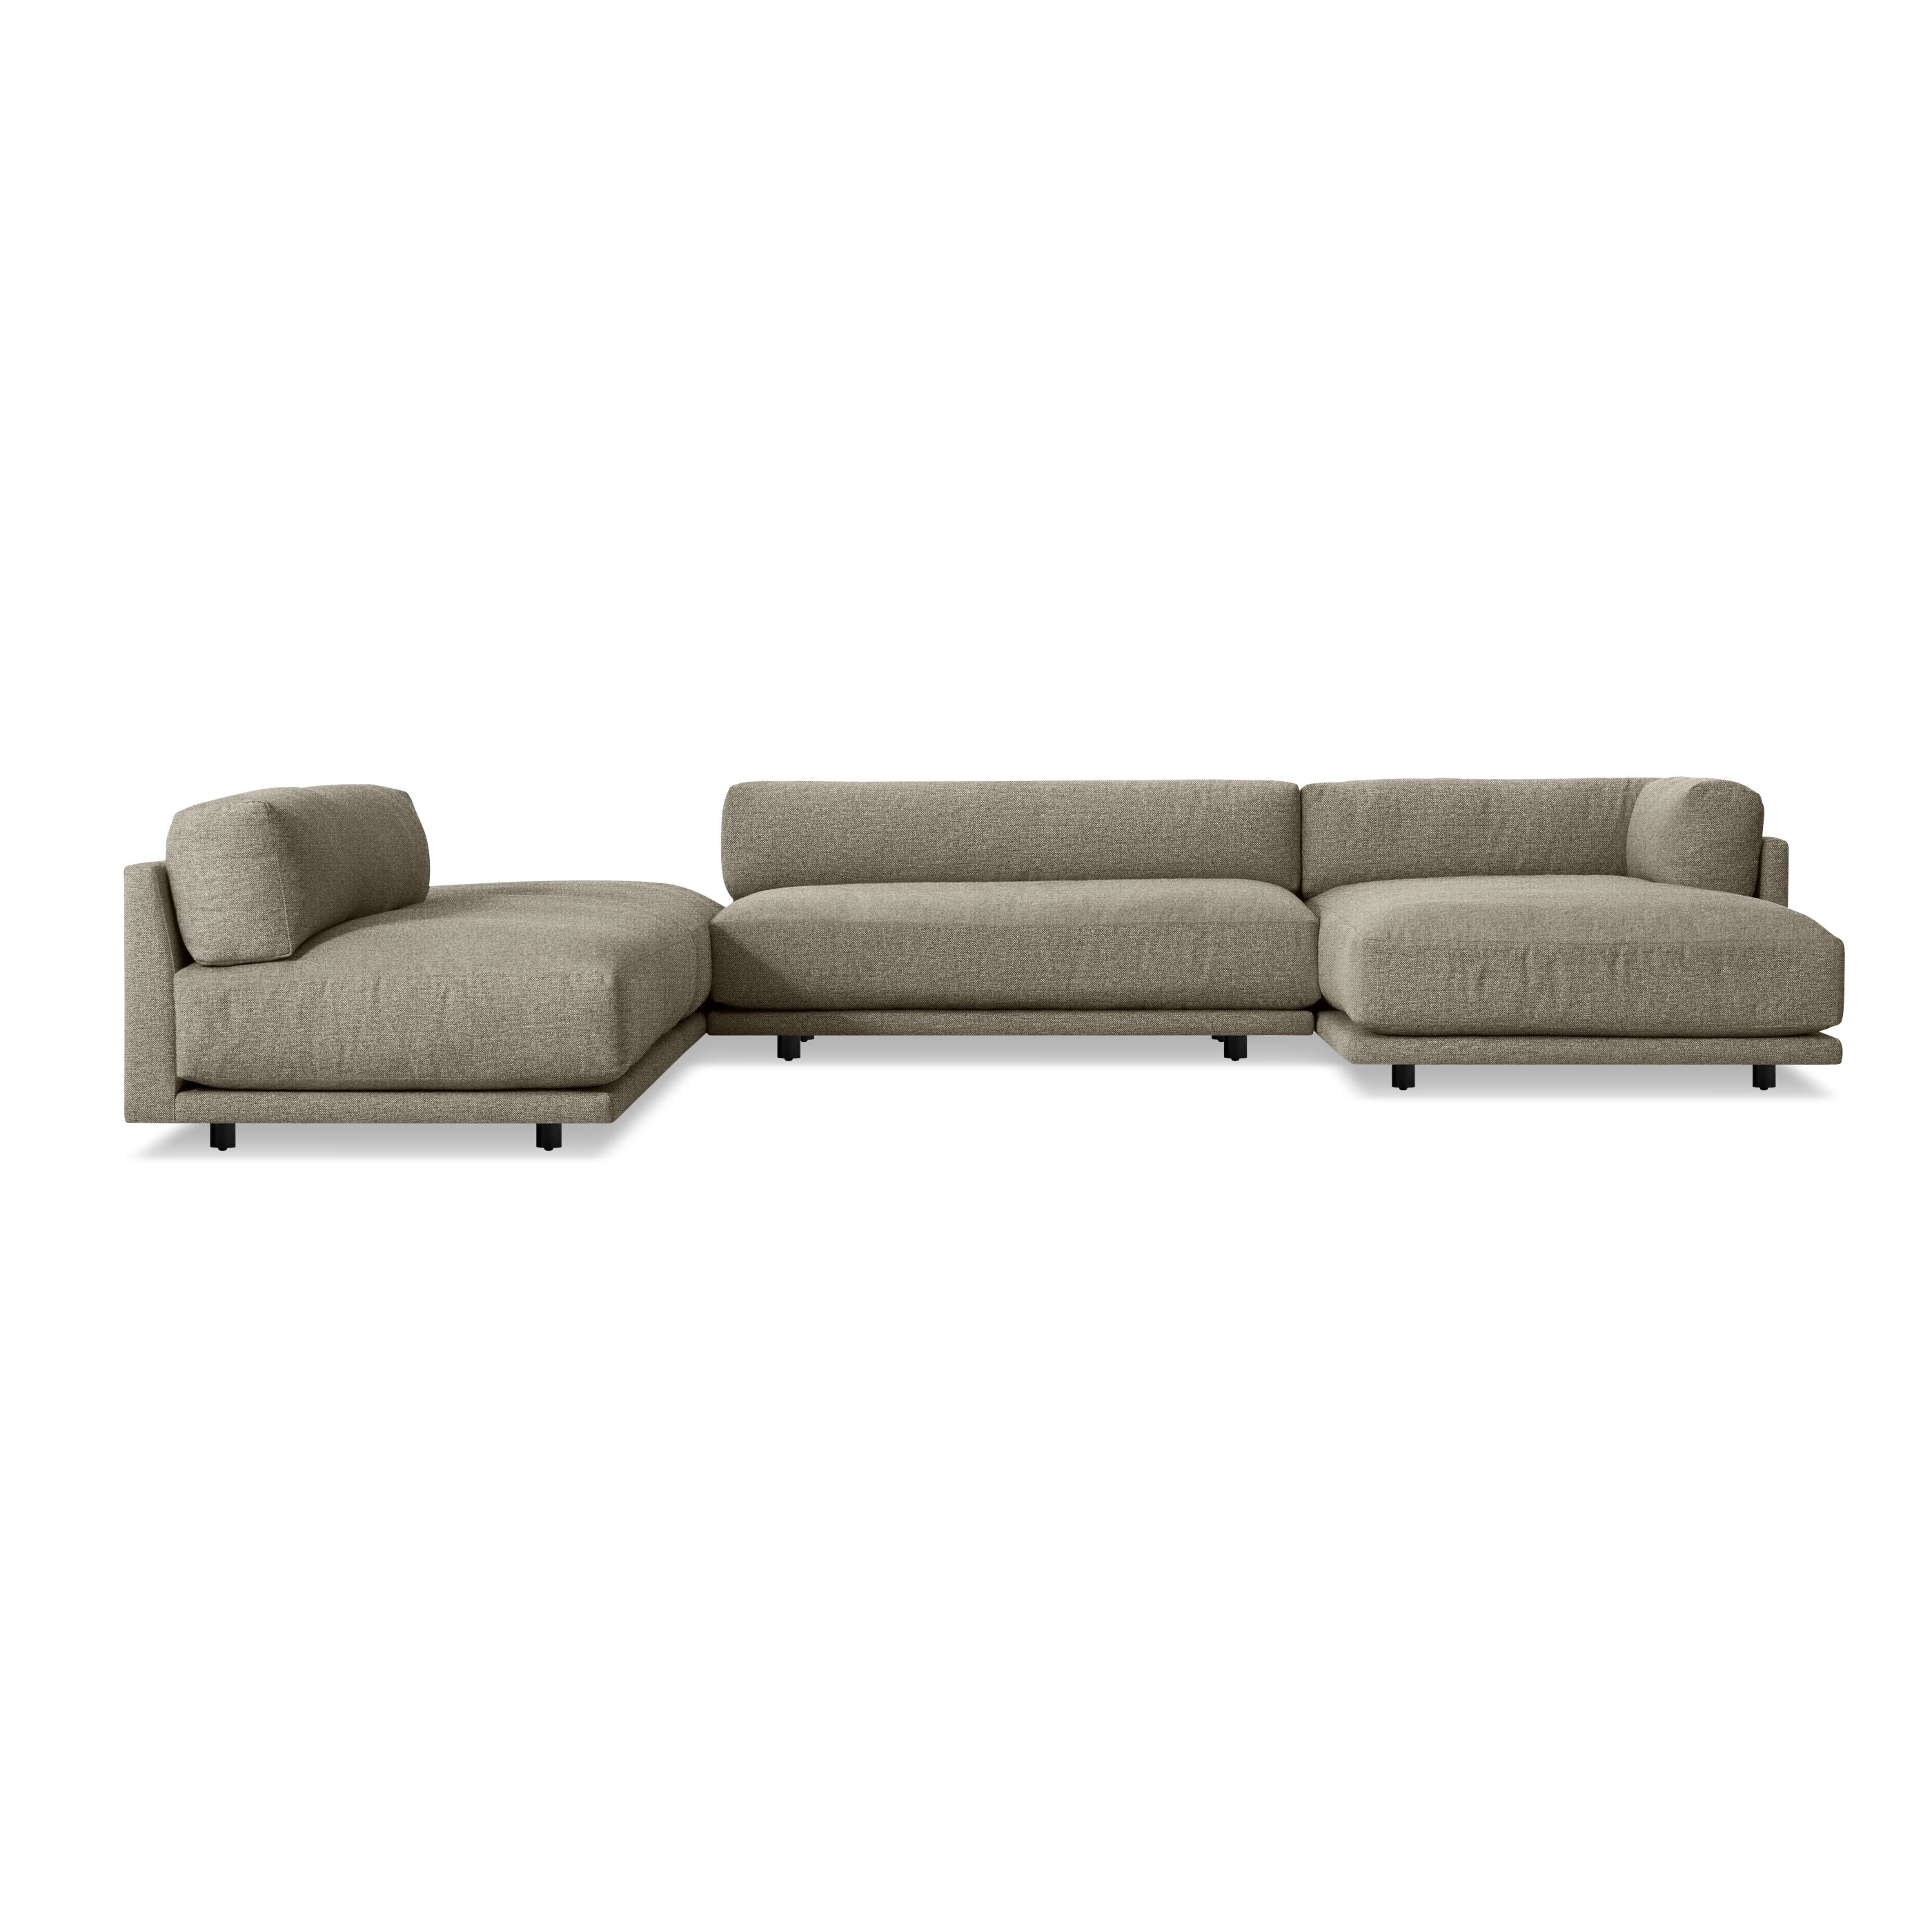 Most Recently Released Newfoundland Sectional Sofas Throughout Sunday J Sectional Sofa W/ Left Chaise (View 8 of 20)